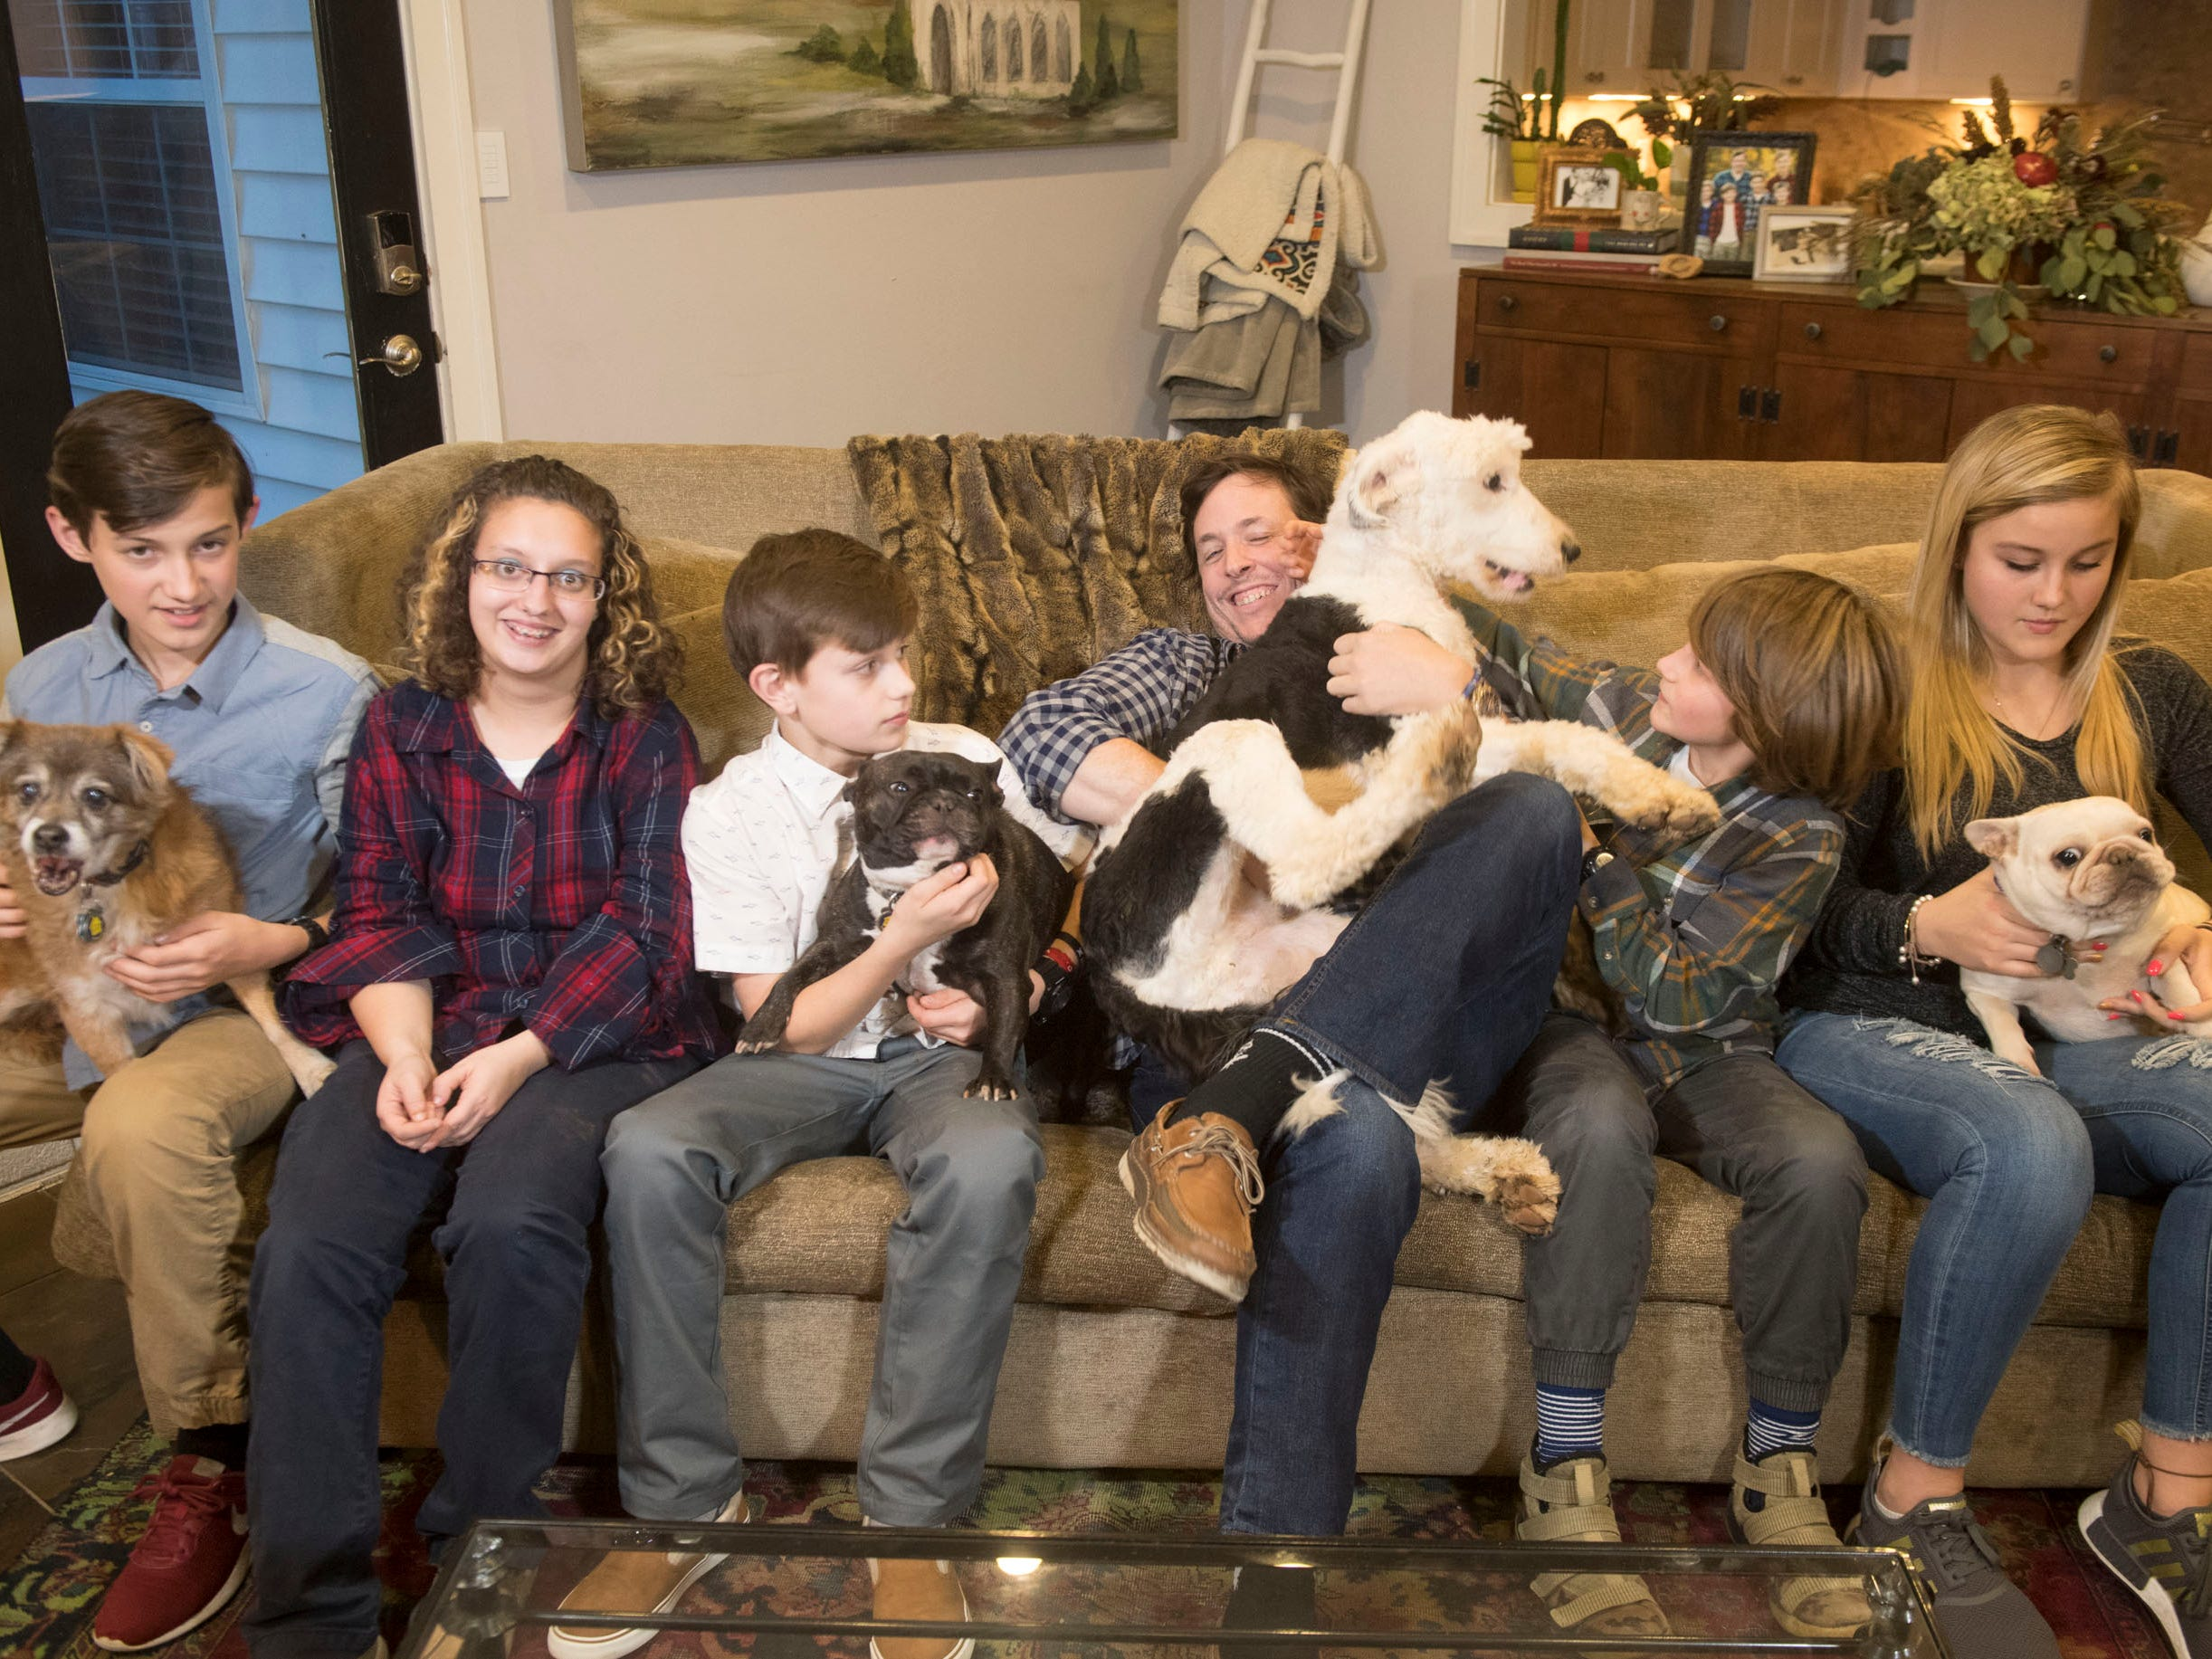 Things are hectic these days in Simon Hall's household. From left, Nick holds Stella, next is Lexi, Blake holds Sherlock, Hall tries to wrangle Mr. Pickles, Mason sits next, and Abby holds Sprout.